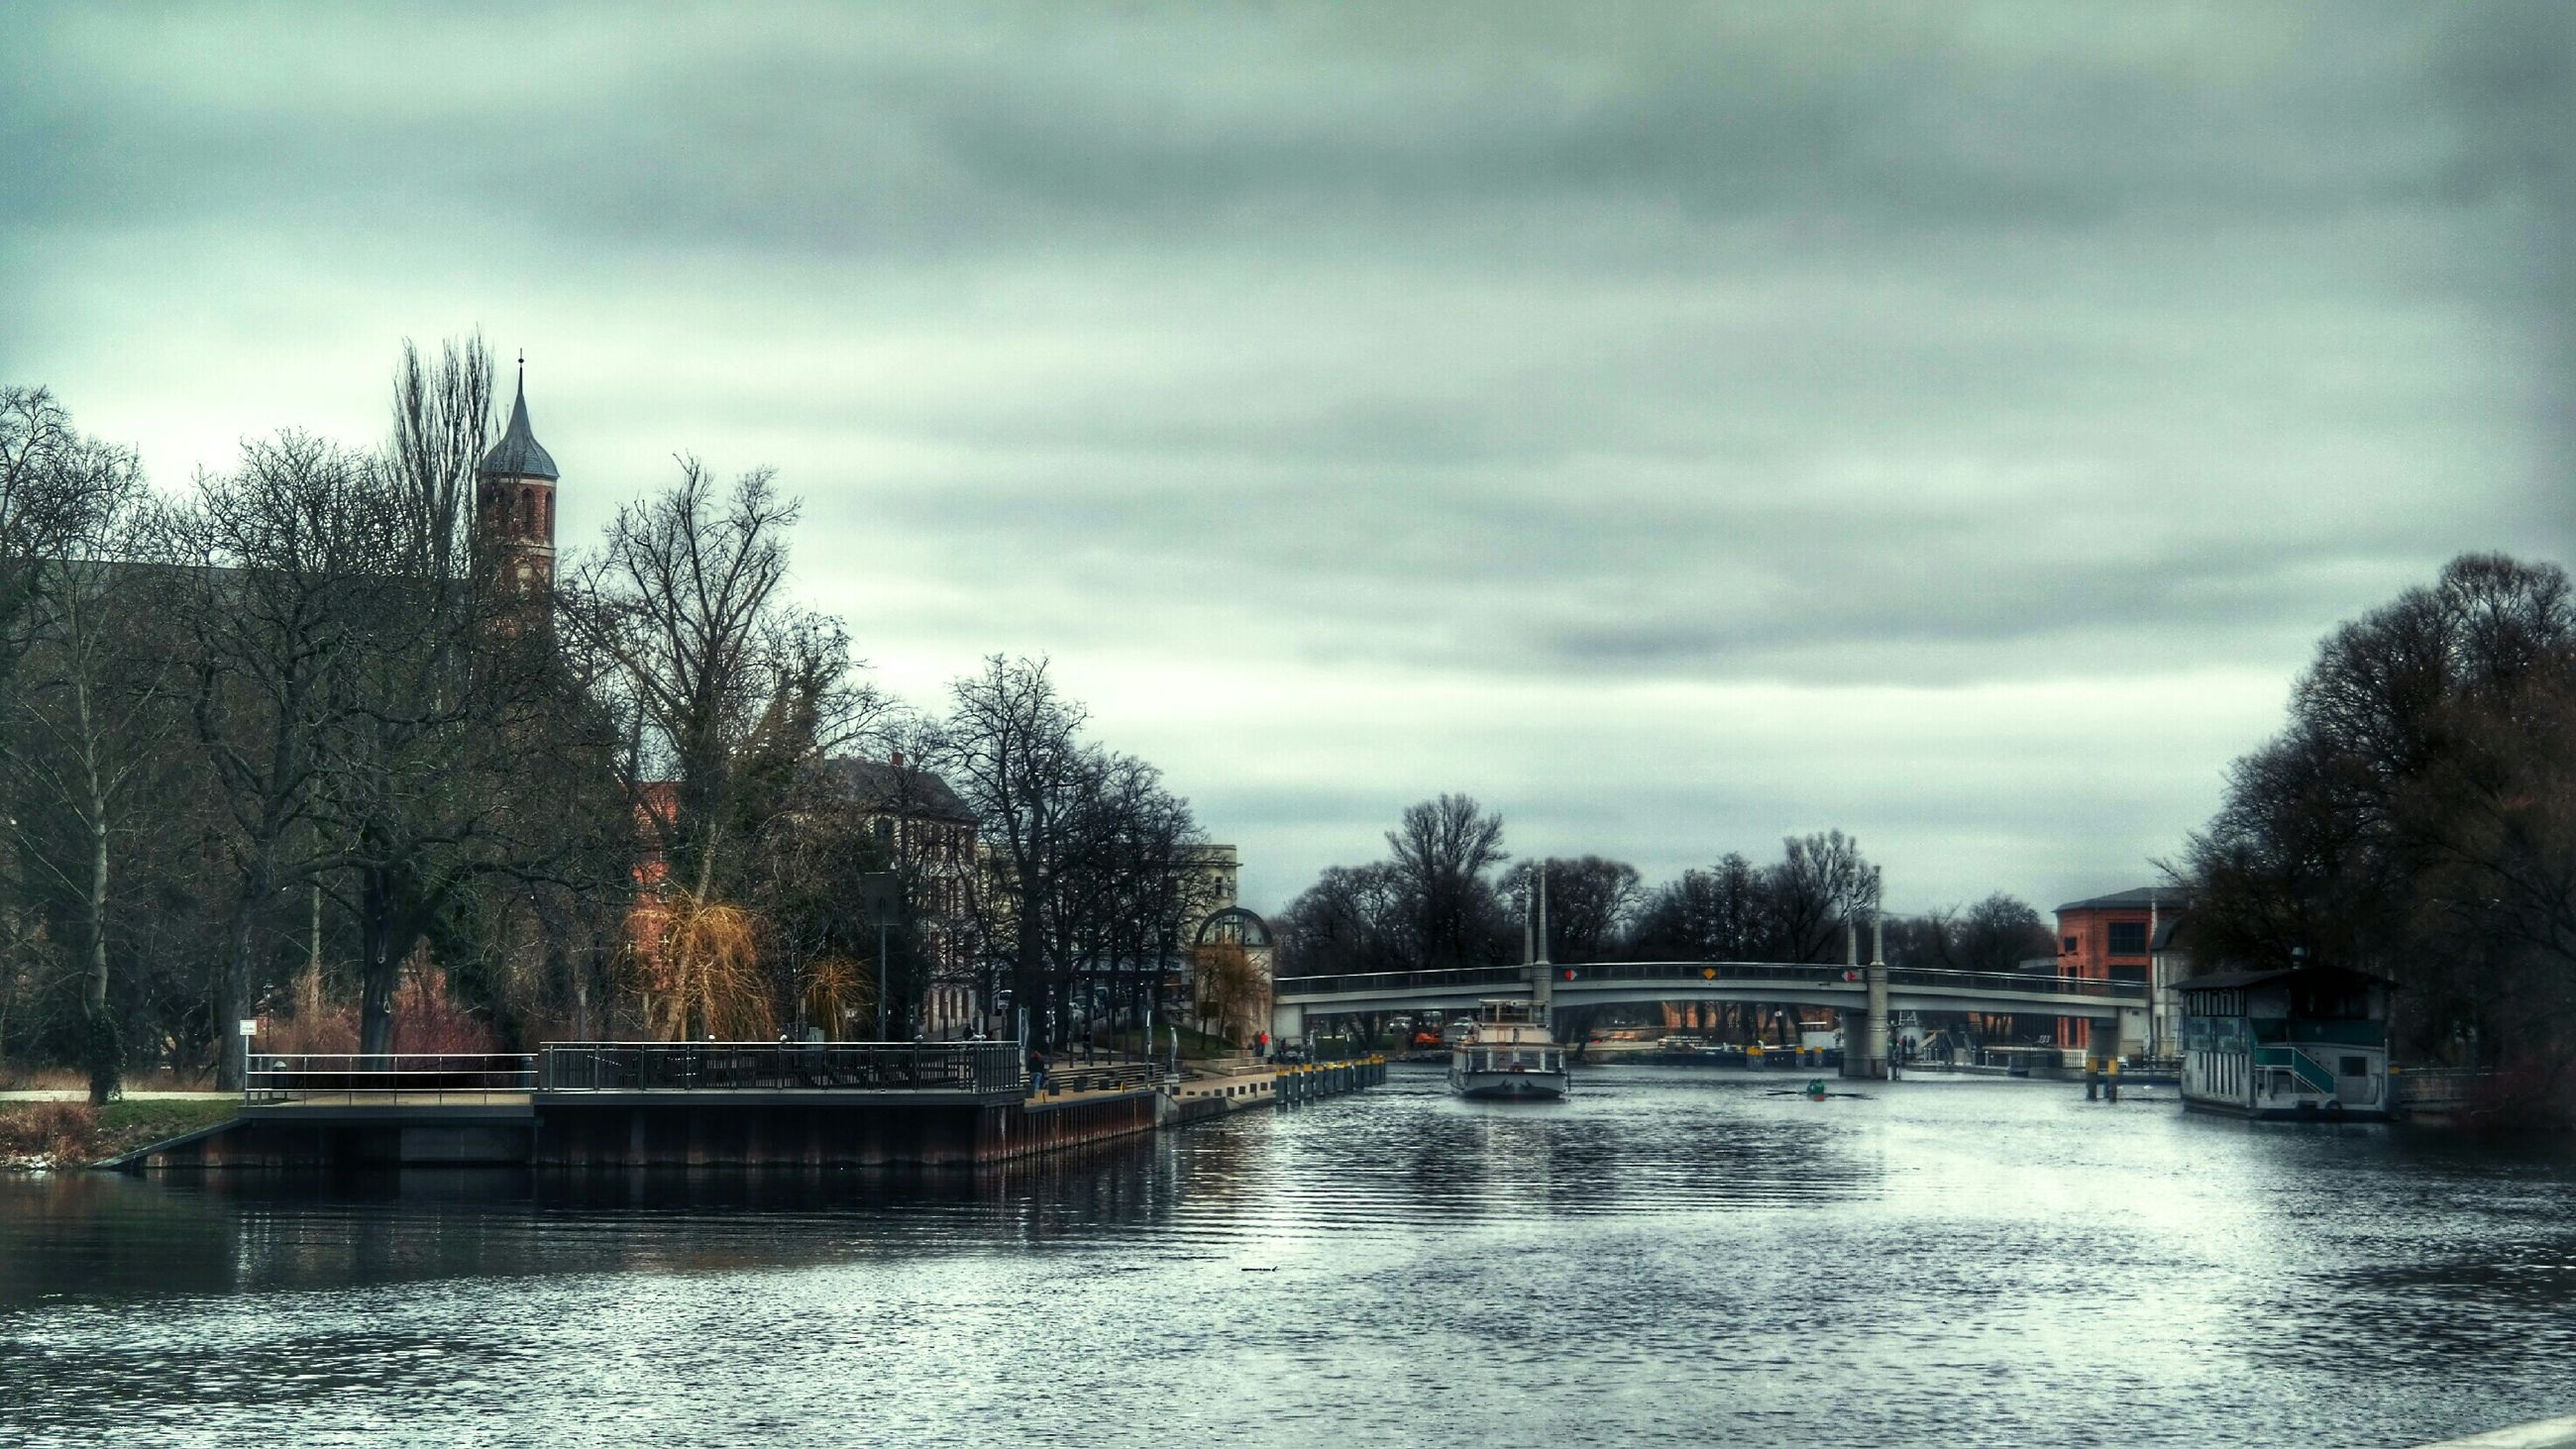 sky, tree, cloud - sky, water, cloudy, built structure, waterfront, architecture, cloud, river, weather, overcast, nature, lake, tranquility, building exterior, tranquil scene, beauty in nature, scenics, bridge - man made structure